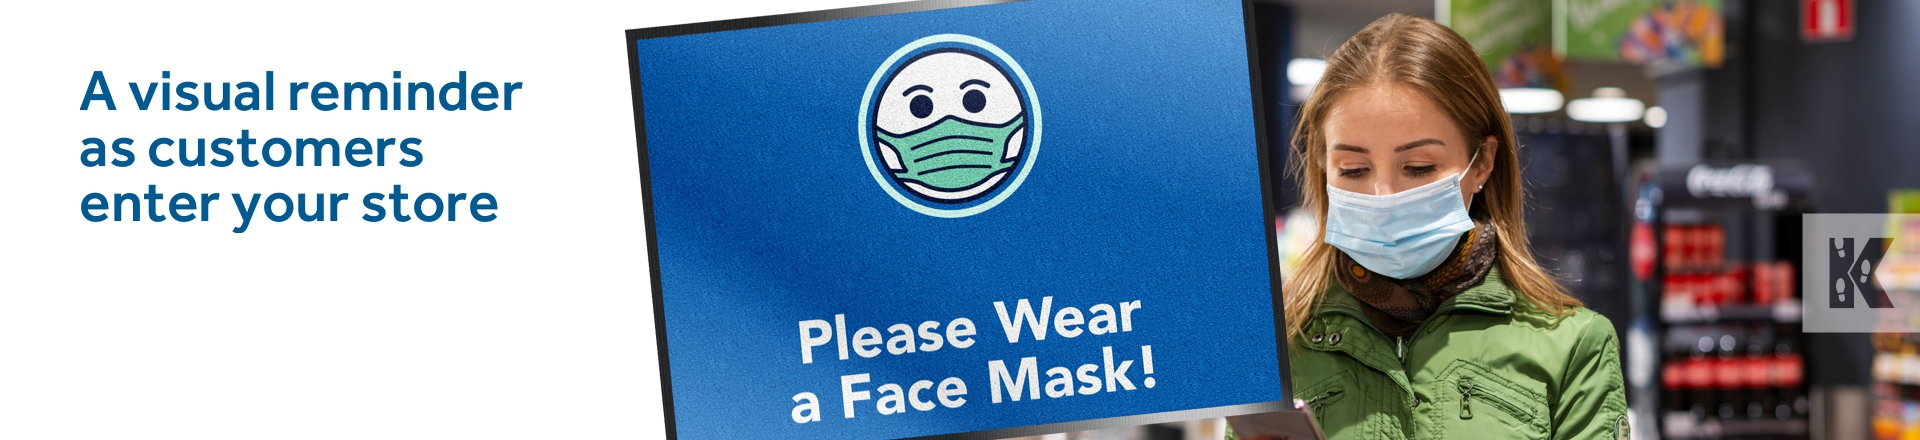 Please wear a Face Mask